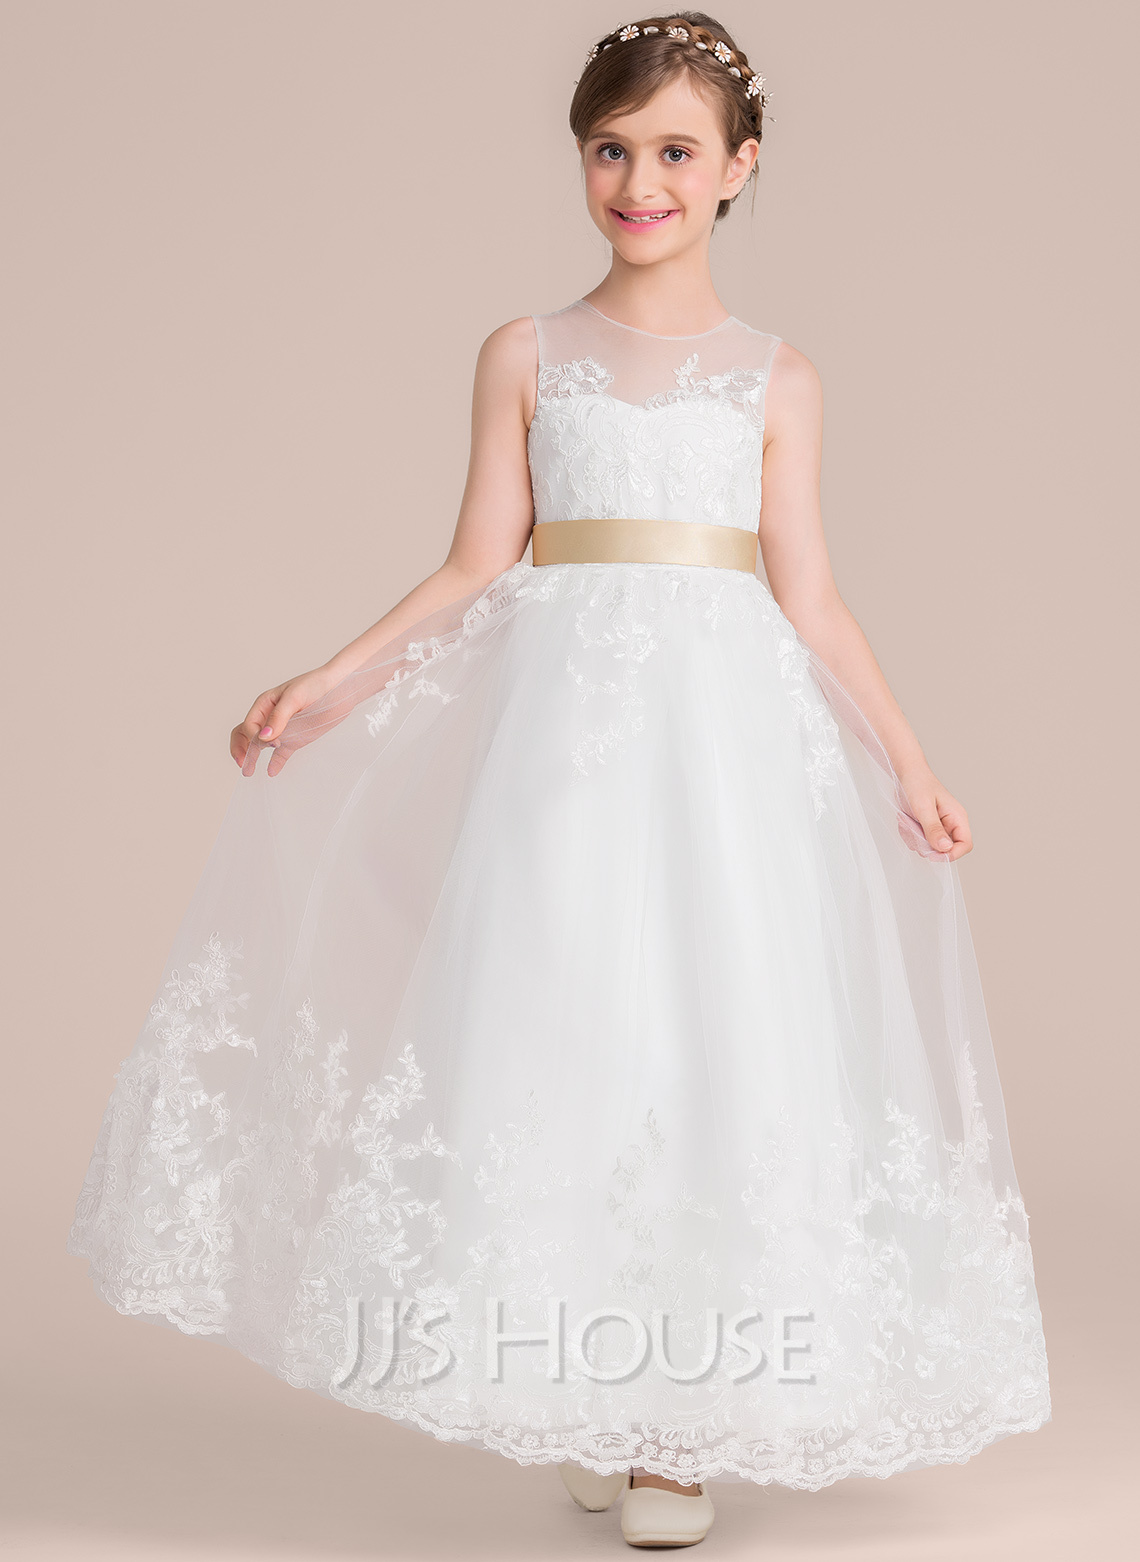 A-Line Scoop Neck Floor-Length Tulle Lace Junior Bridesmaid Dress With Sash Bow(s)